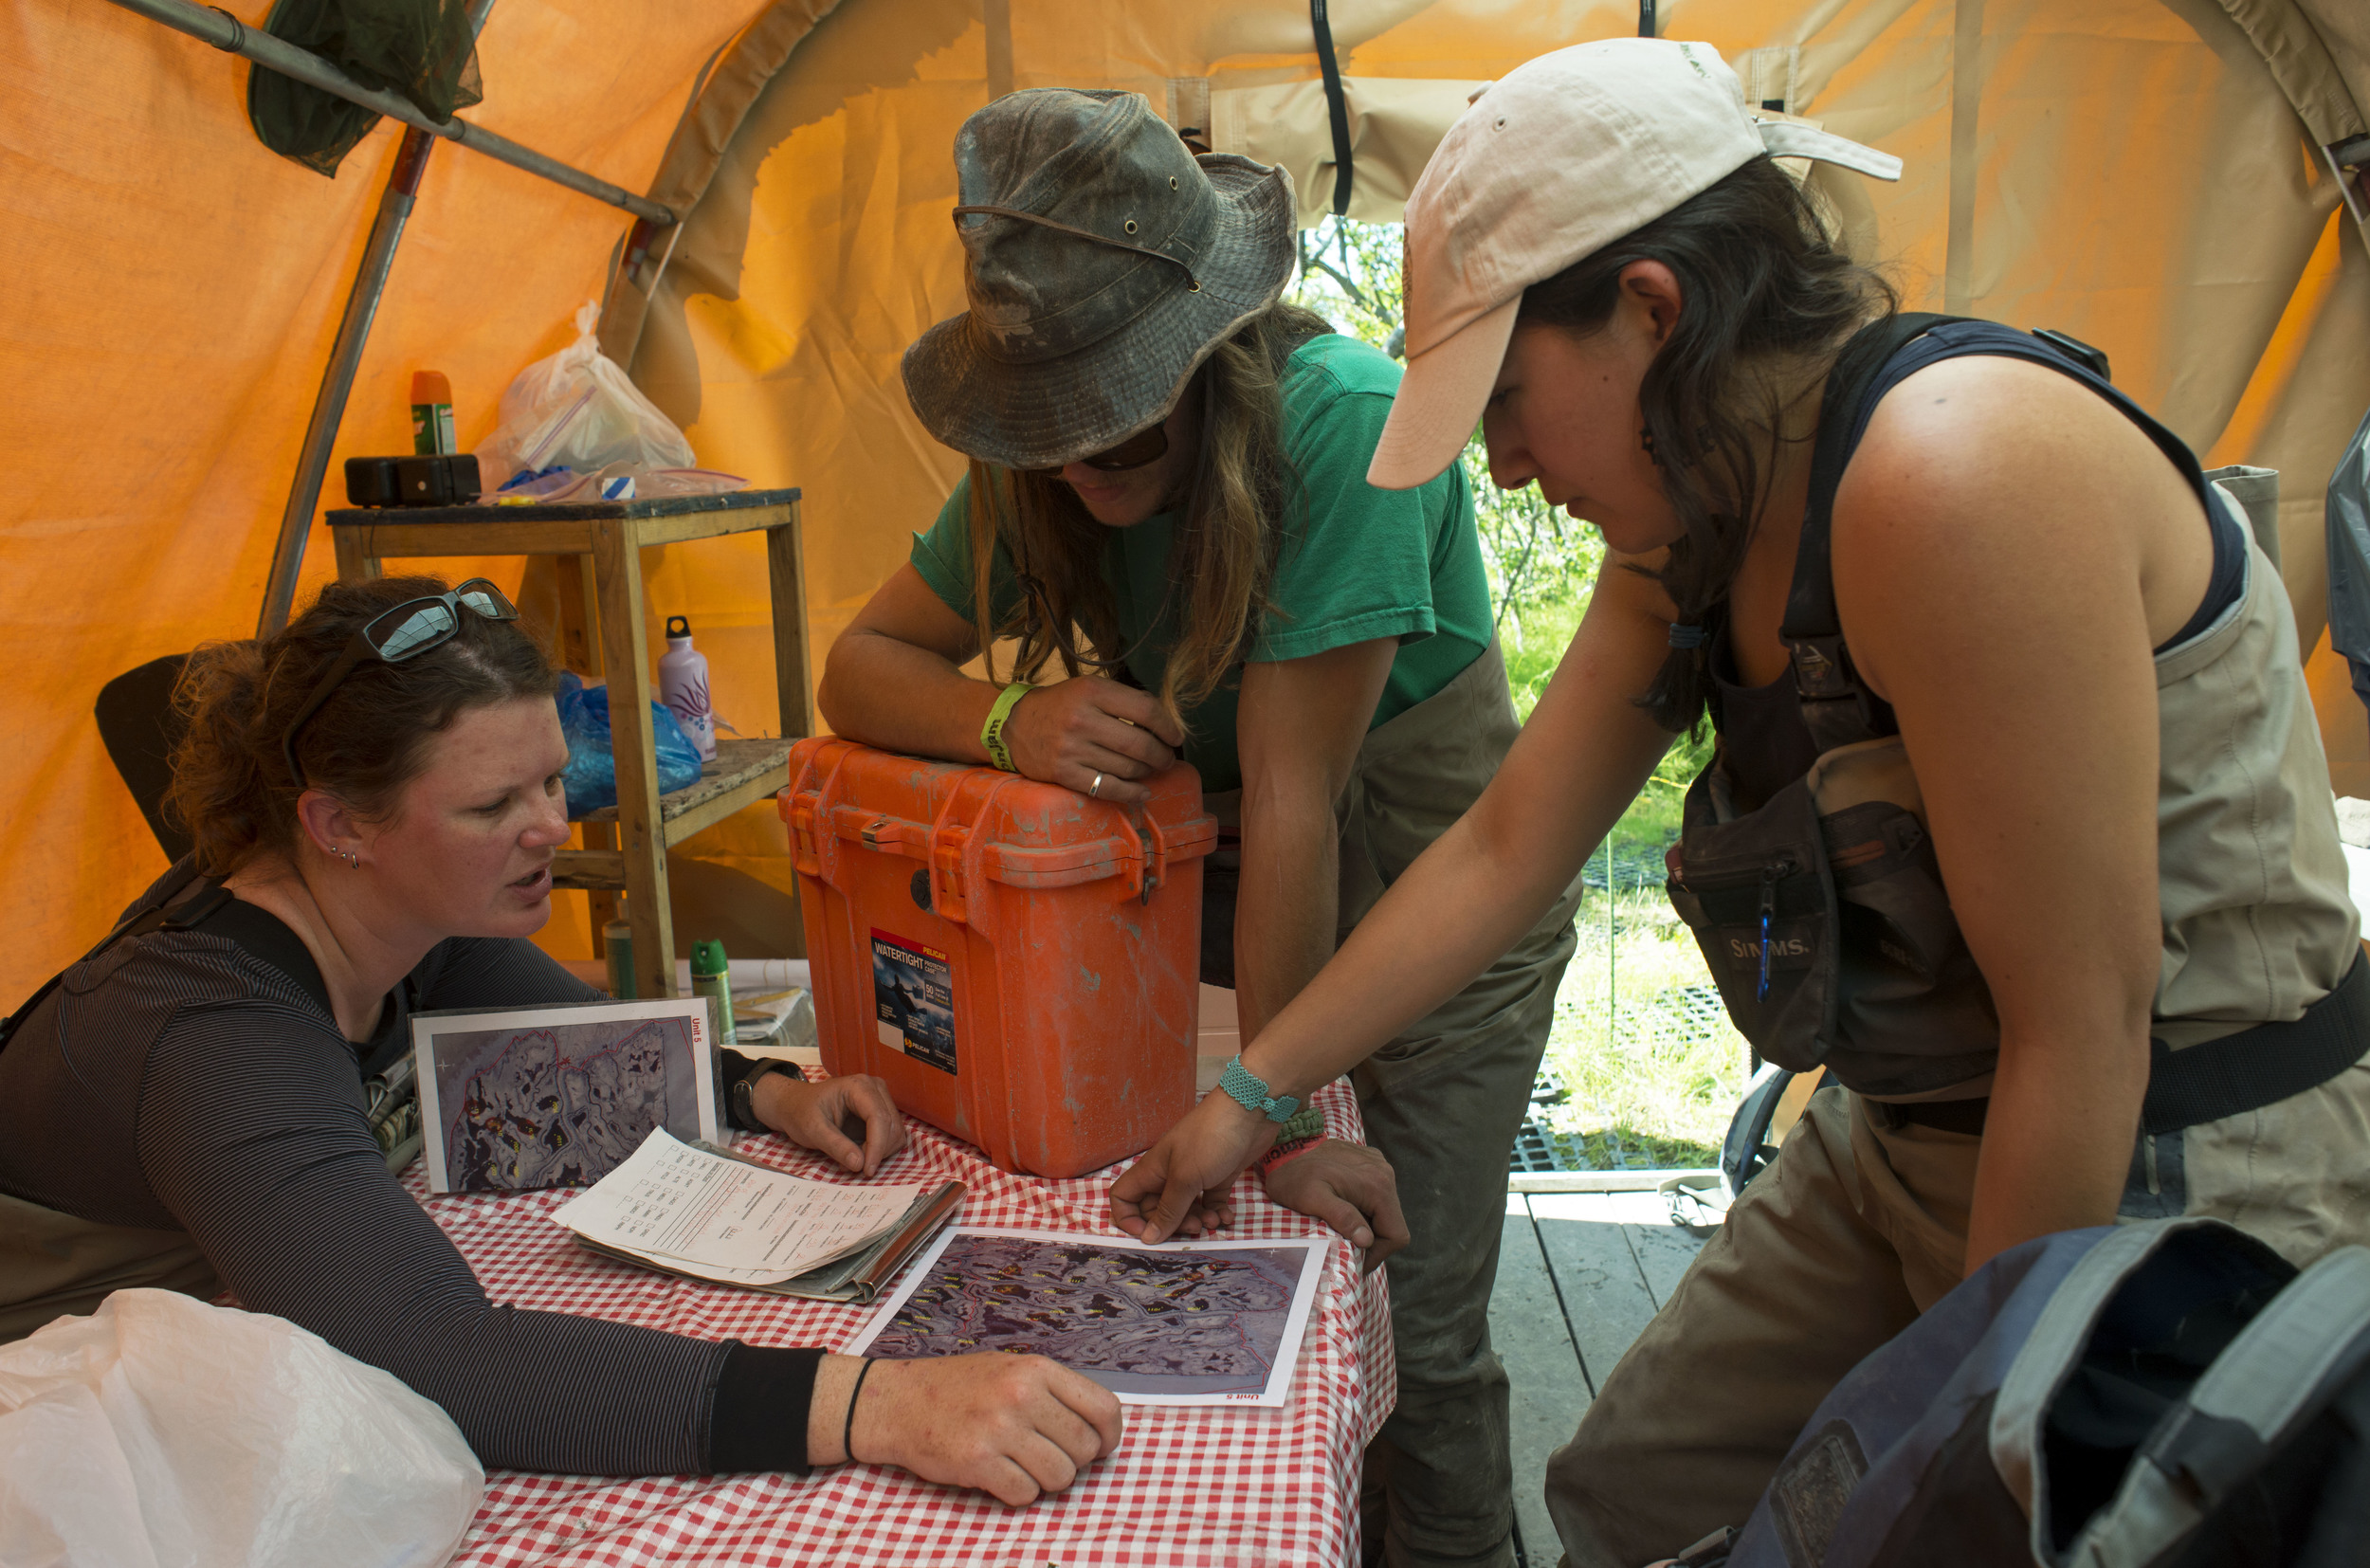 Melissa Gabrielson examines the map of nest islands with James Benson and   Erica Gaeta  . The team formulates a strategy to maintain the islands in need of maintenance within one given area during their four-day stay at Dusky Camp.